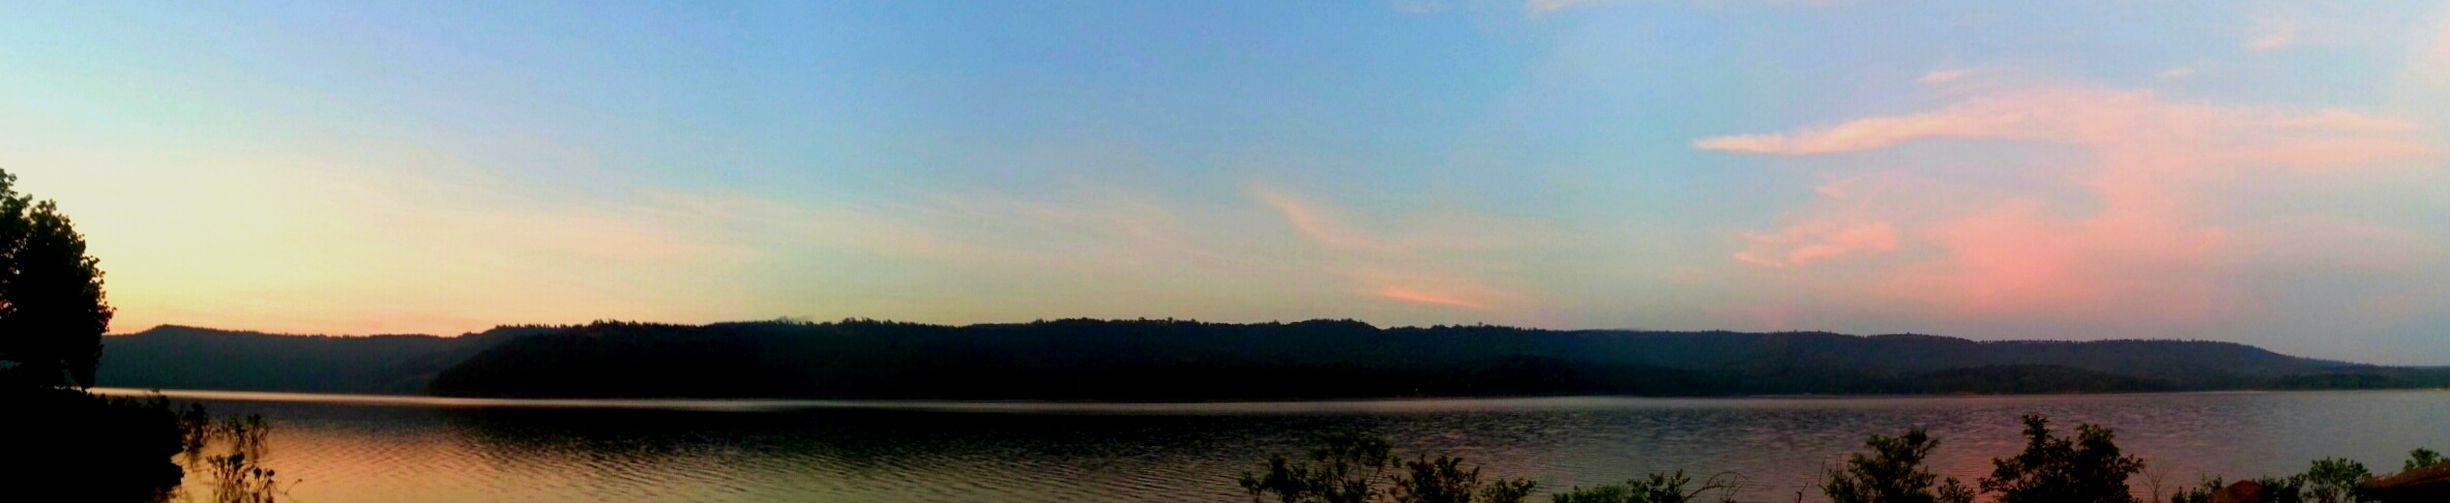 Pano of the Southwest side of Greers Ferry Lake Ar Landscape_Collection AMPt_community Don't Be Square EyeEm Nature Lover